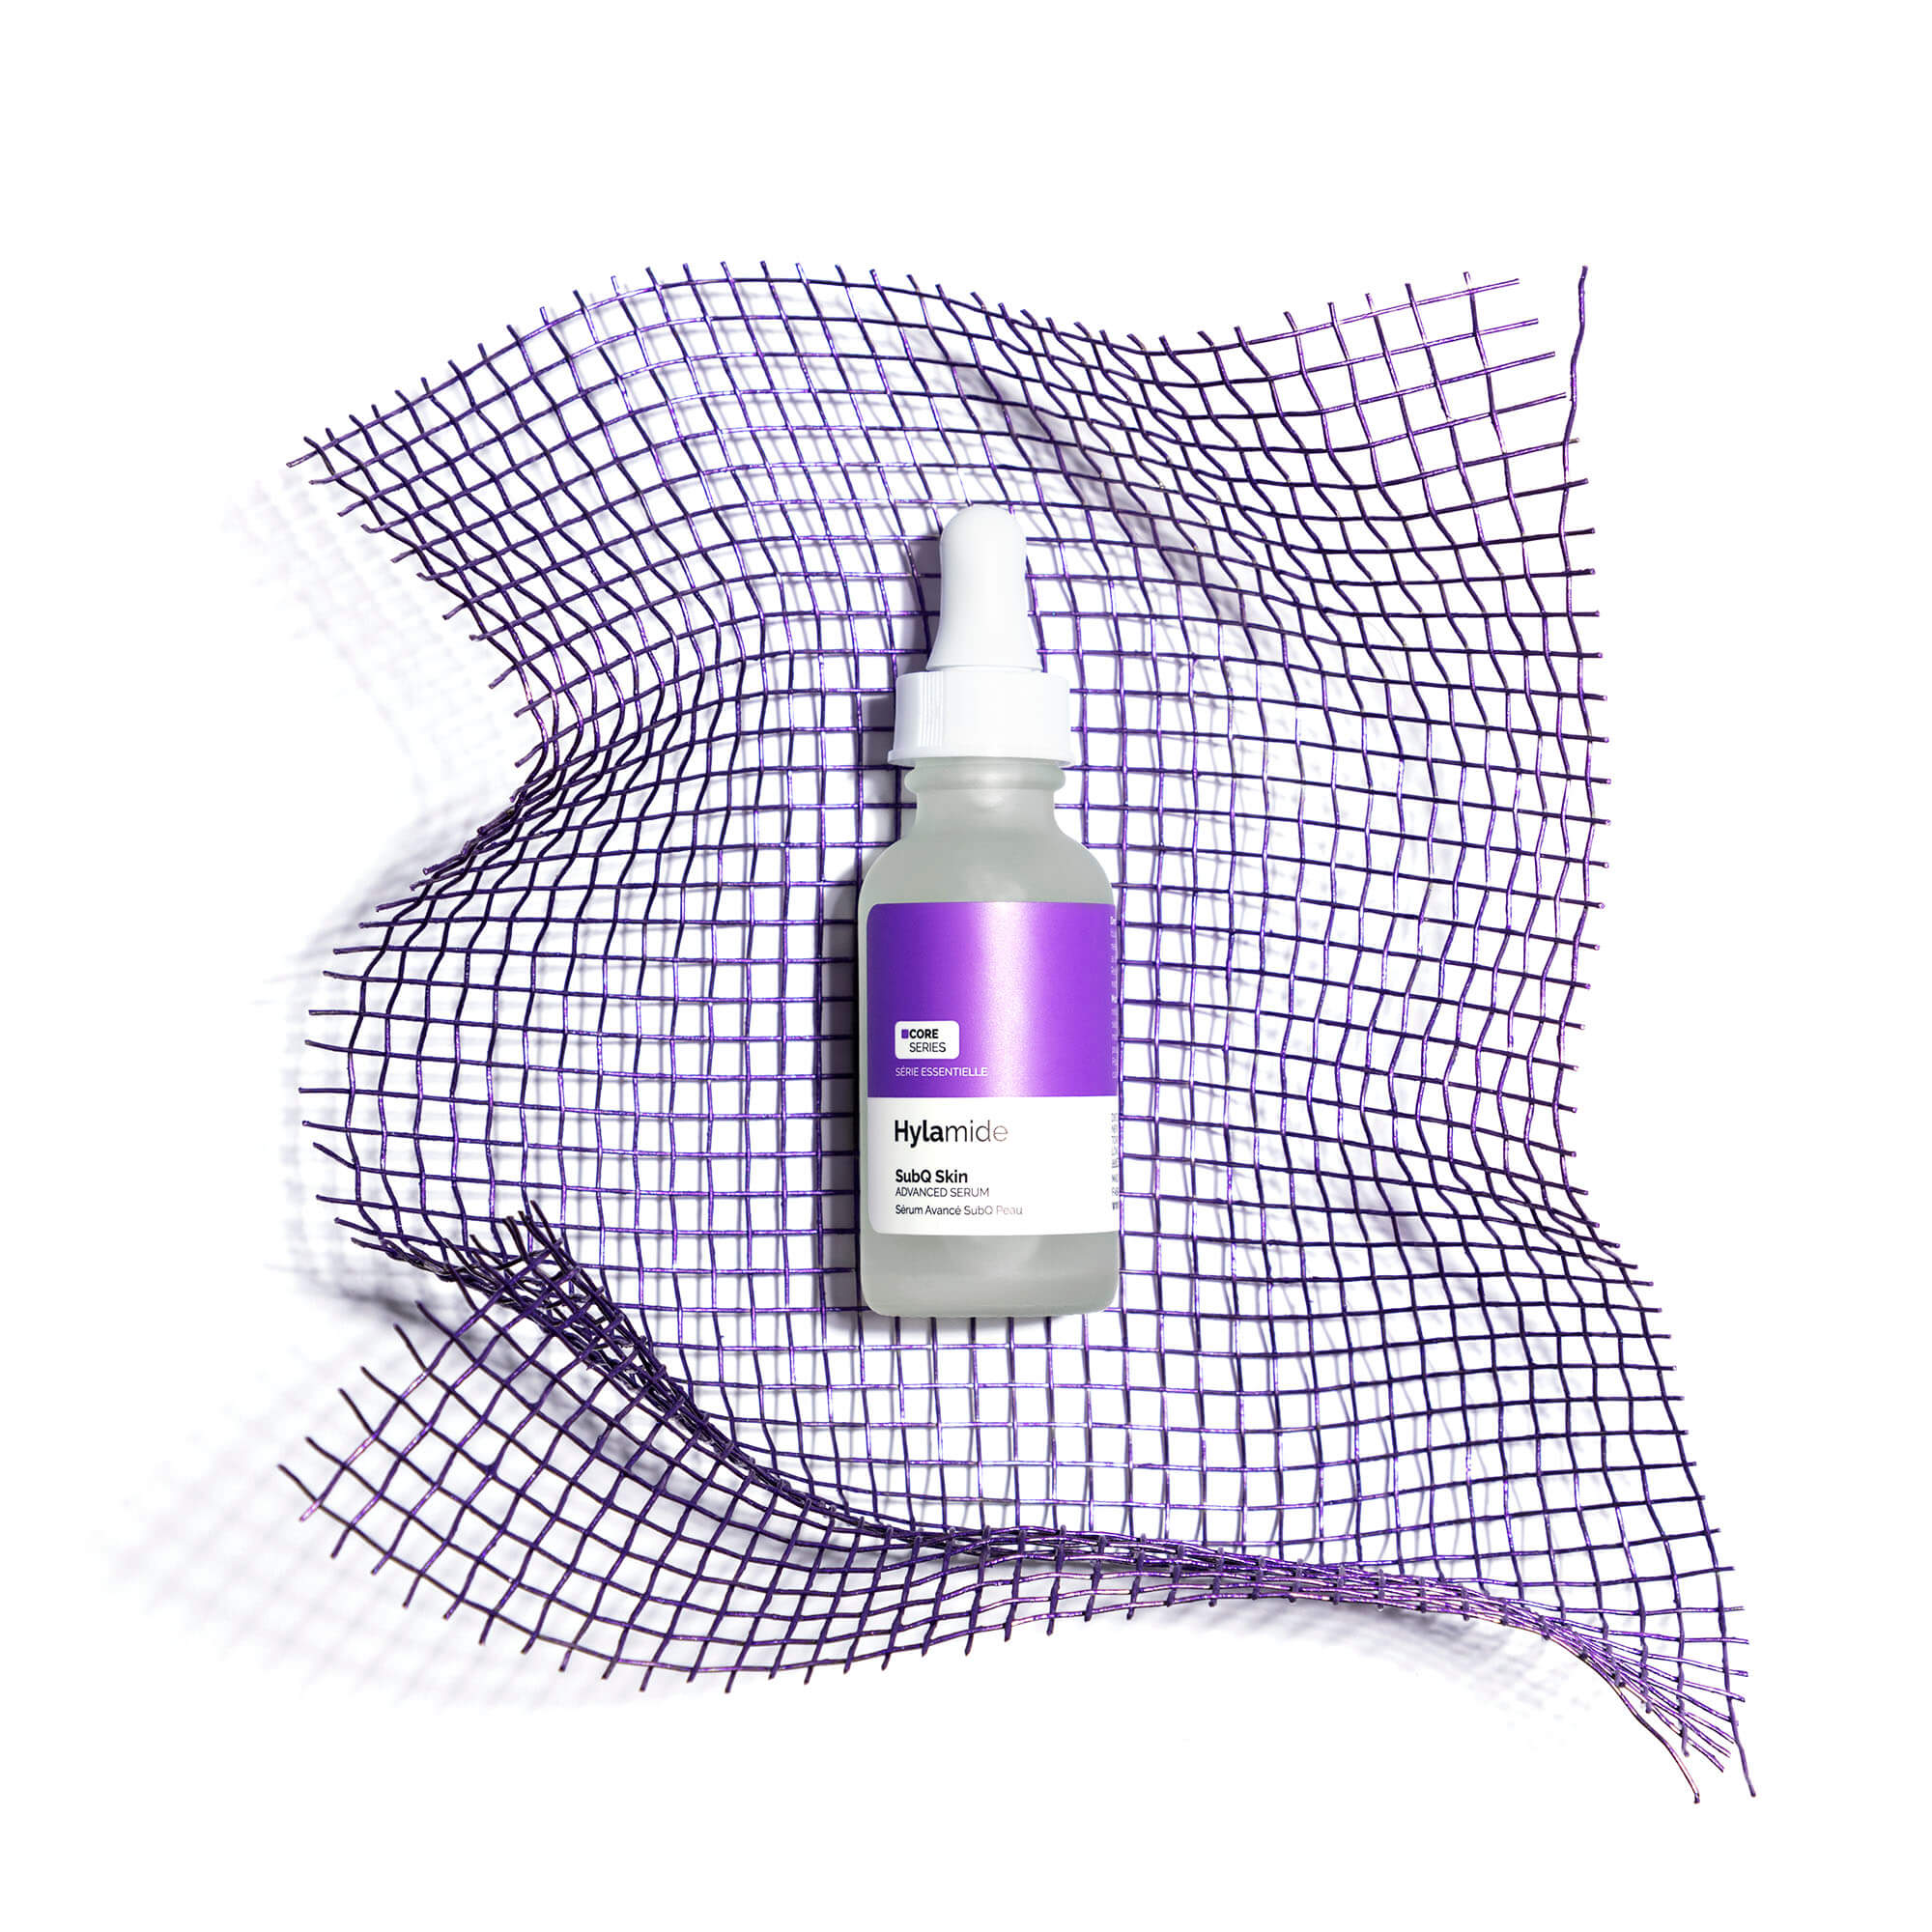 Hylamide SubQ Skin serum bottle against purple netting